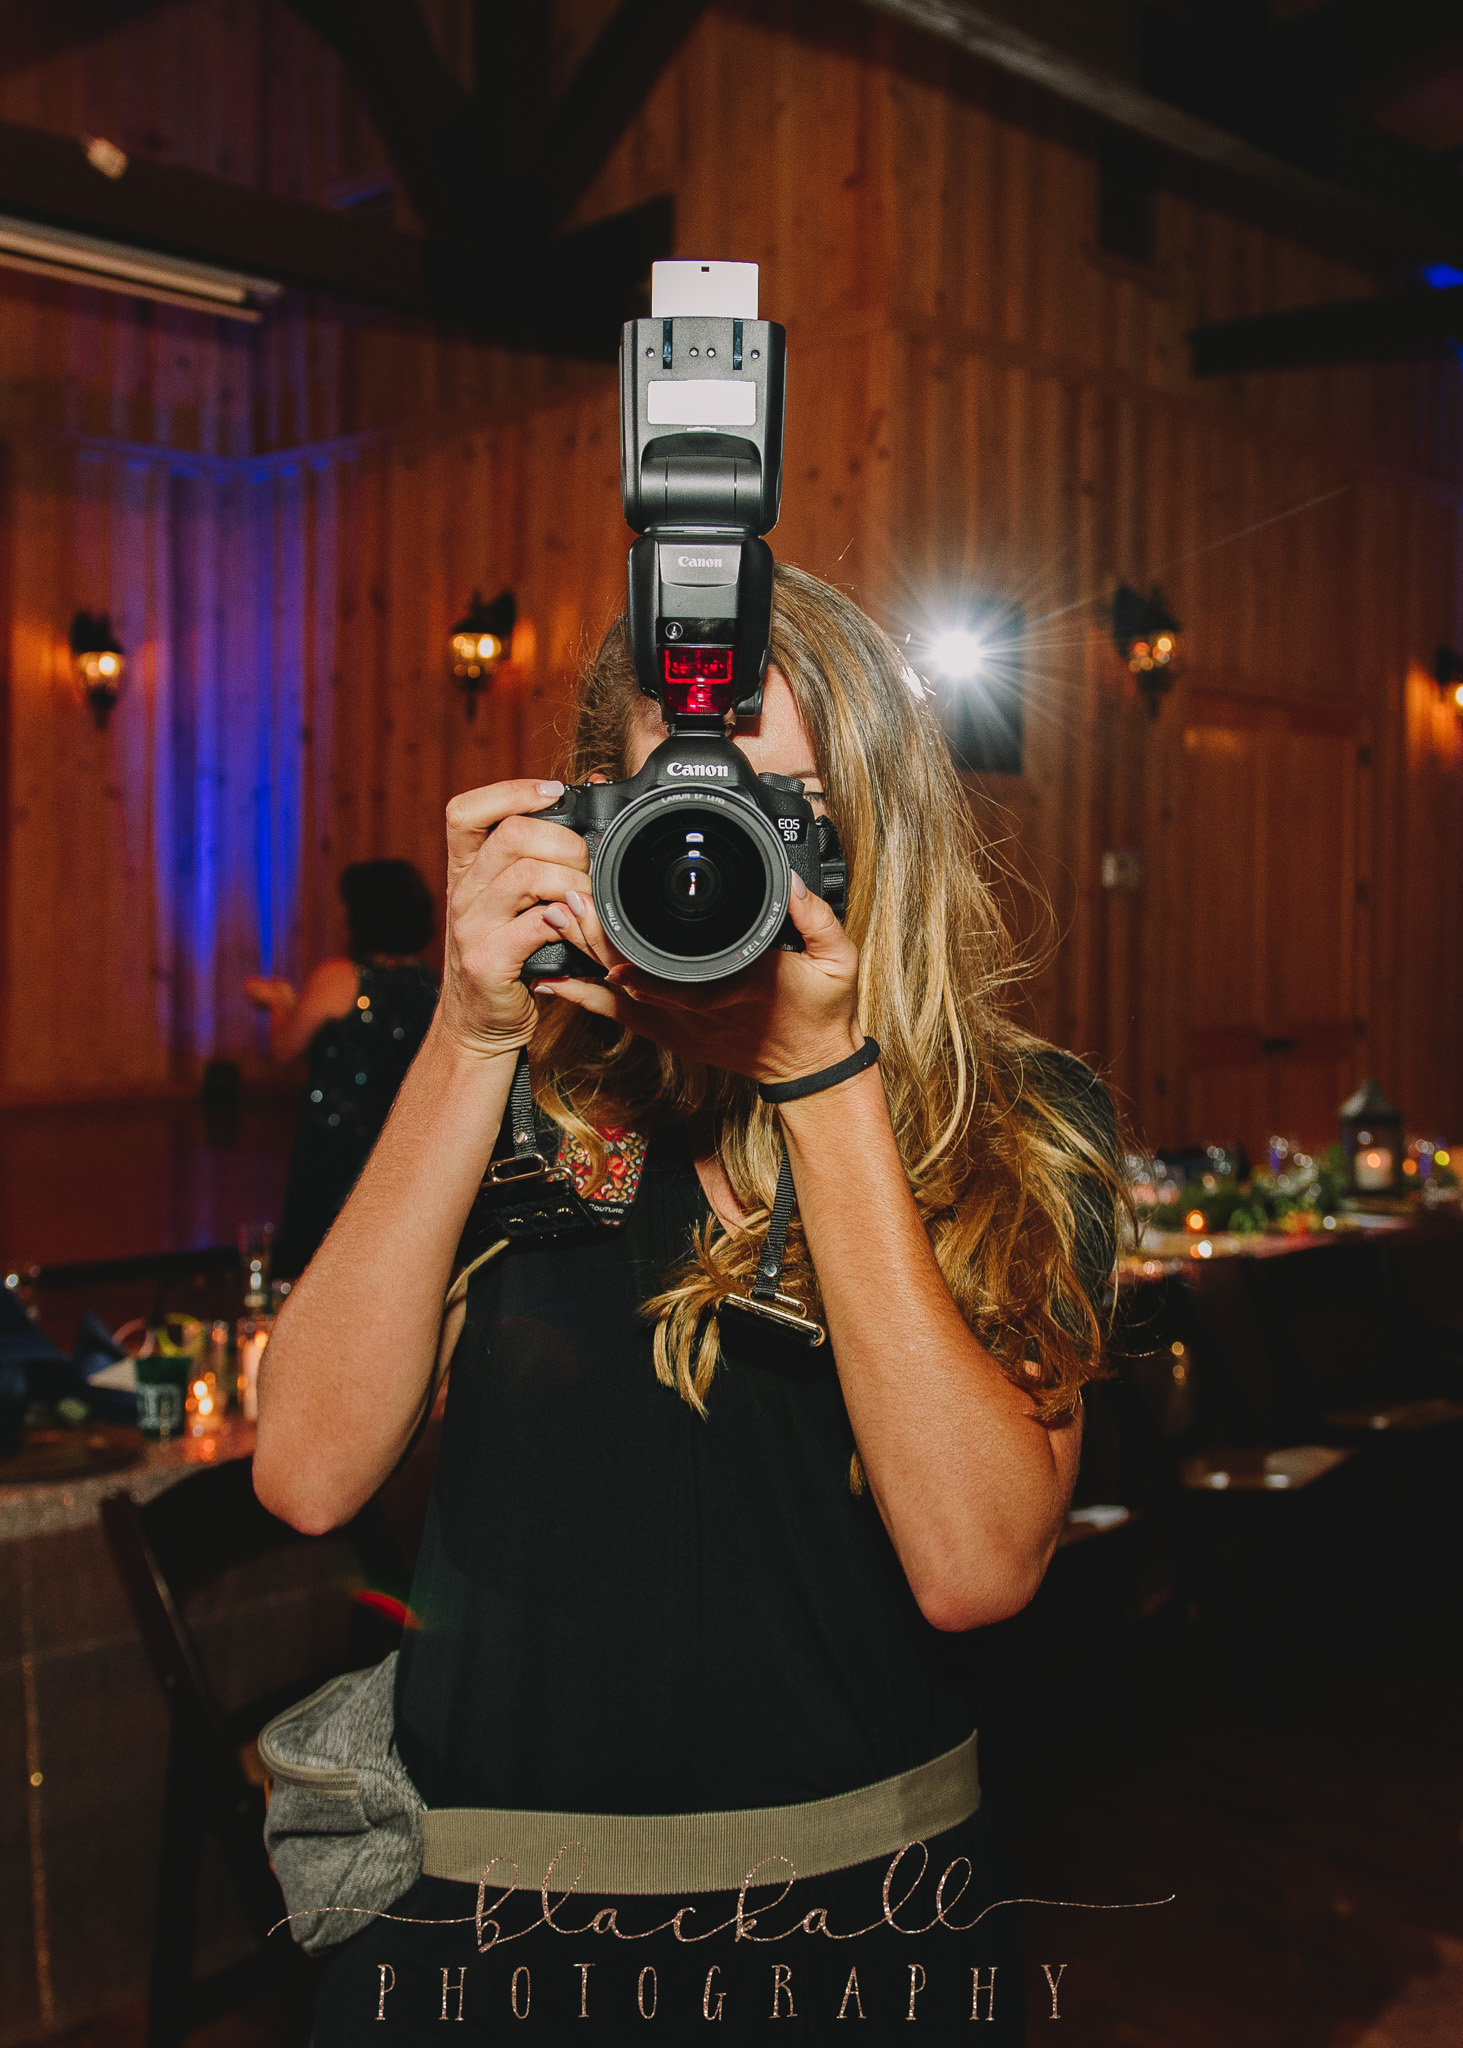 A SPECIAL BP thank you to Cassie Canales with Captured Reverie Photography for volunteering her time for this beautiful wedding!! Please click this image to check her out!! She's amazing!